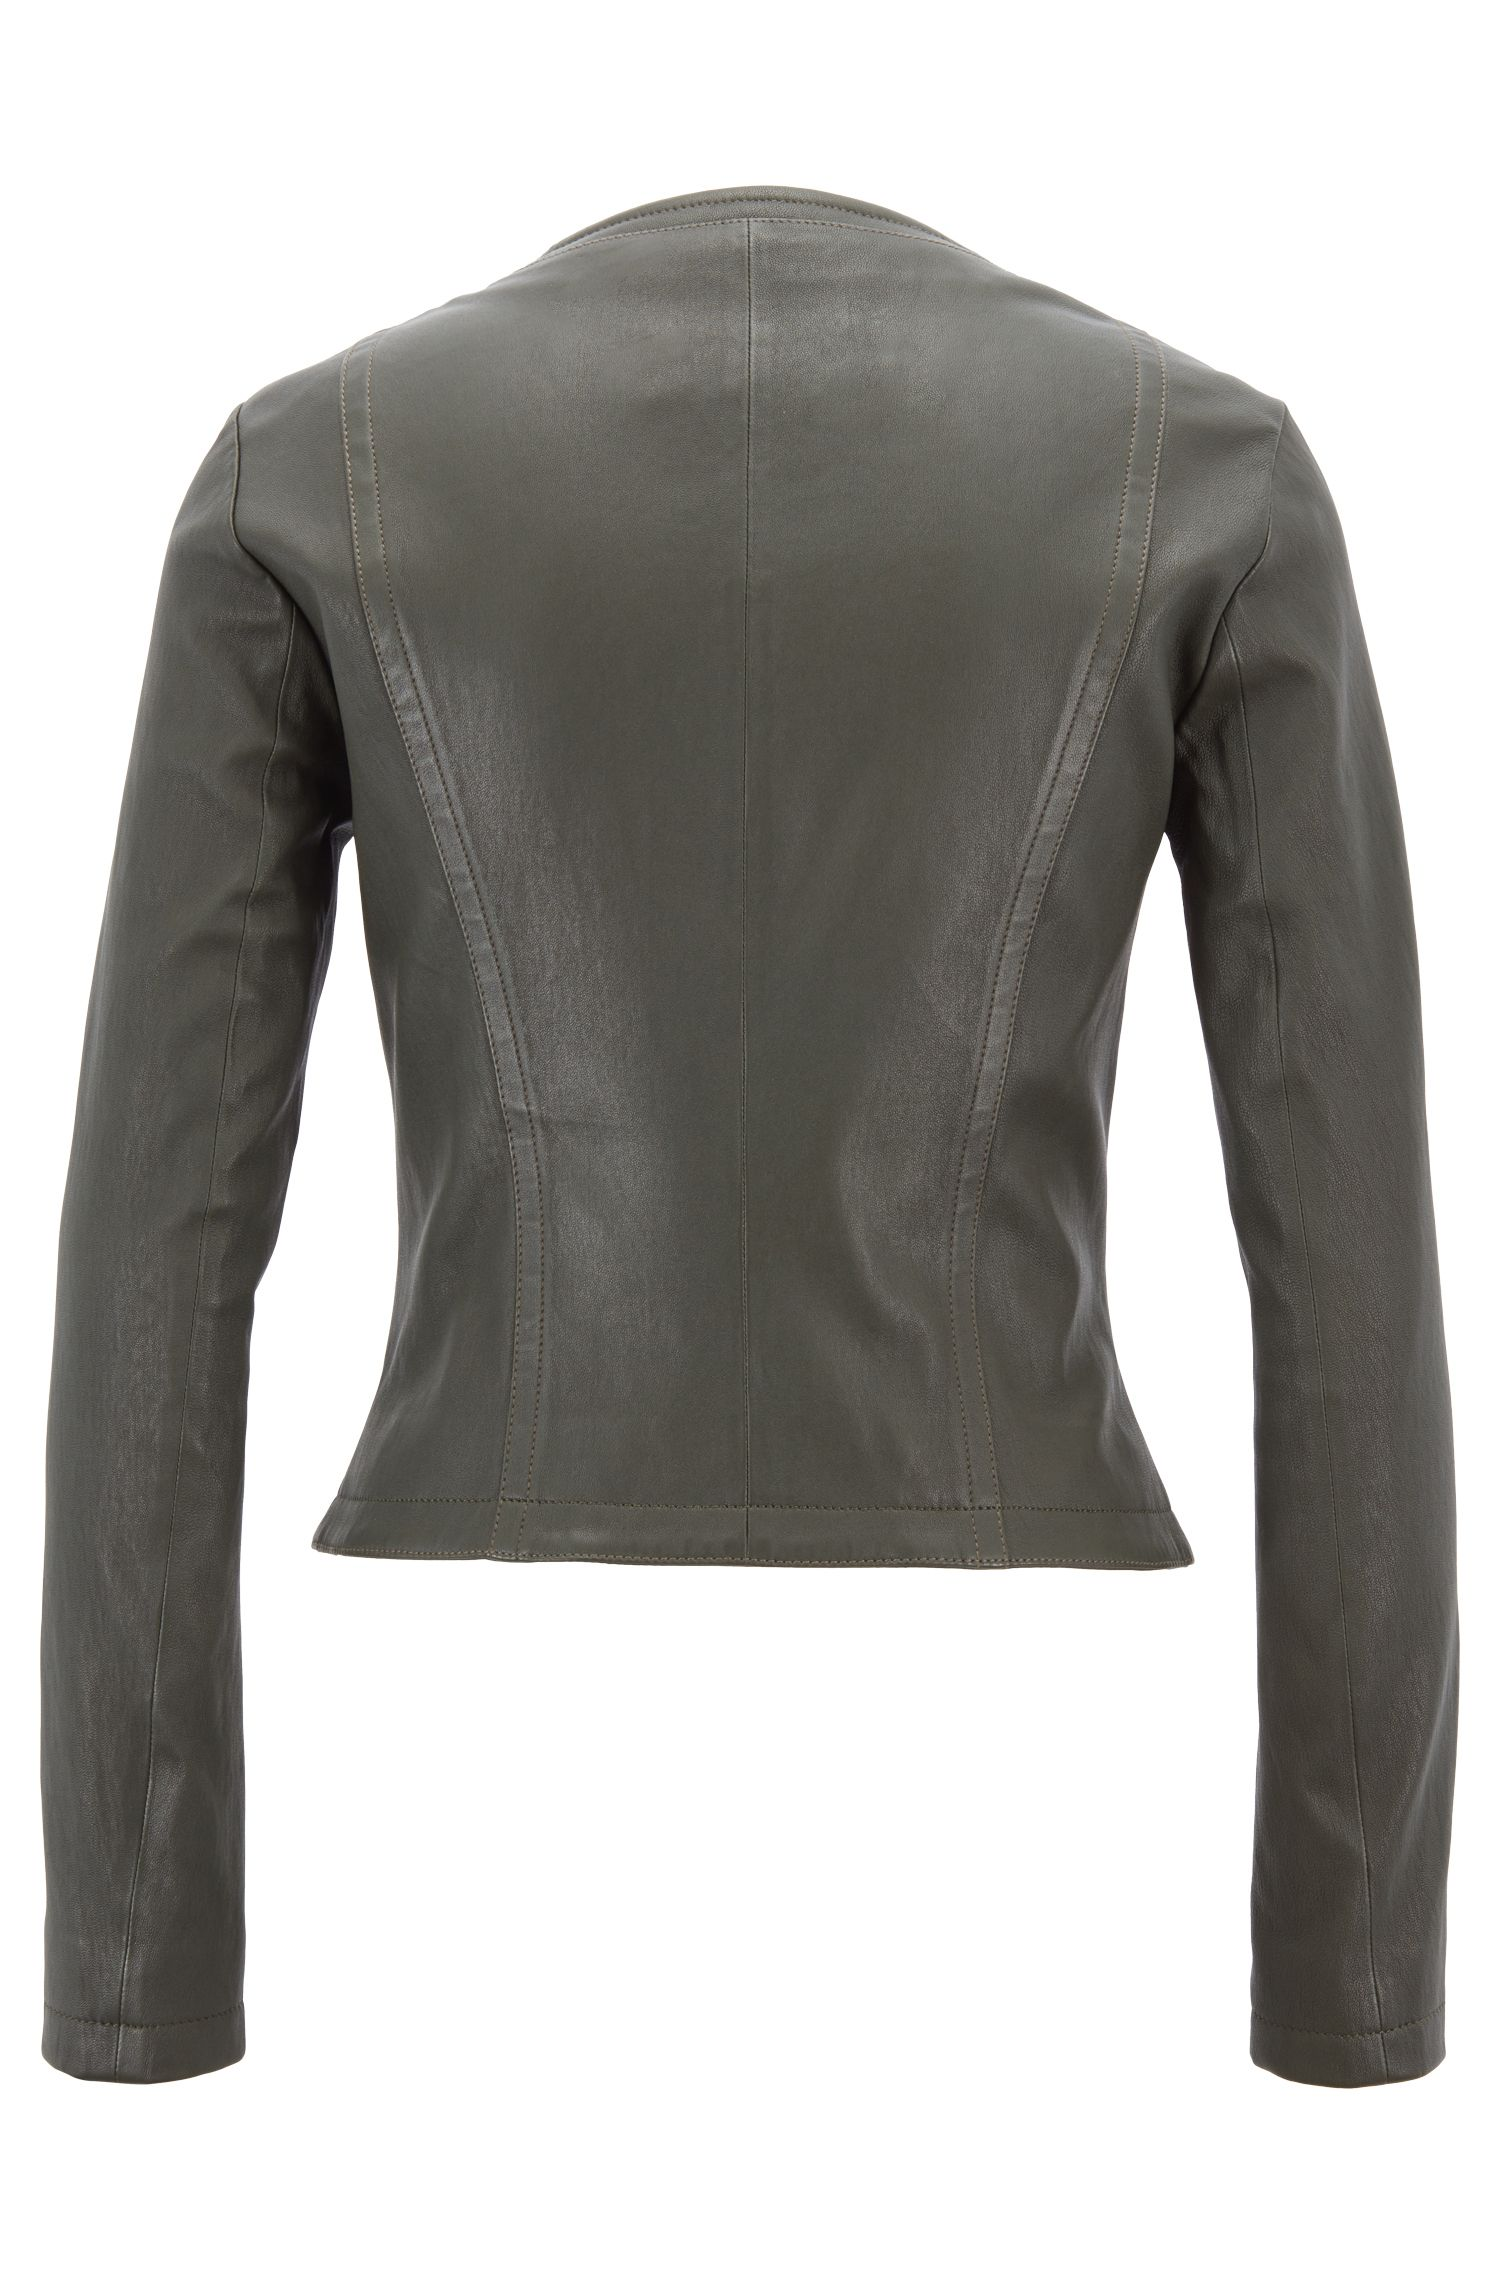 Veste Slim Fit sans col, en cuir d'agneau stretch